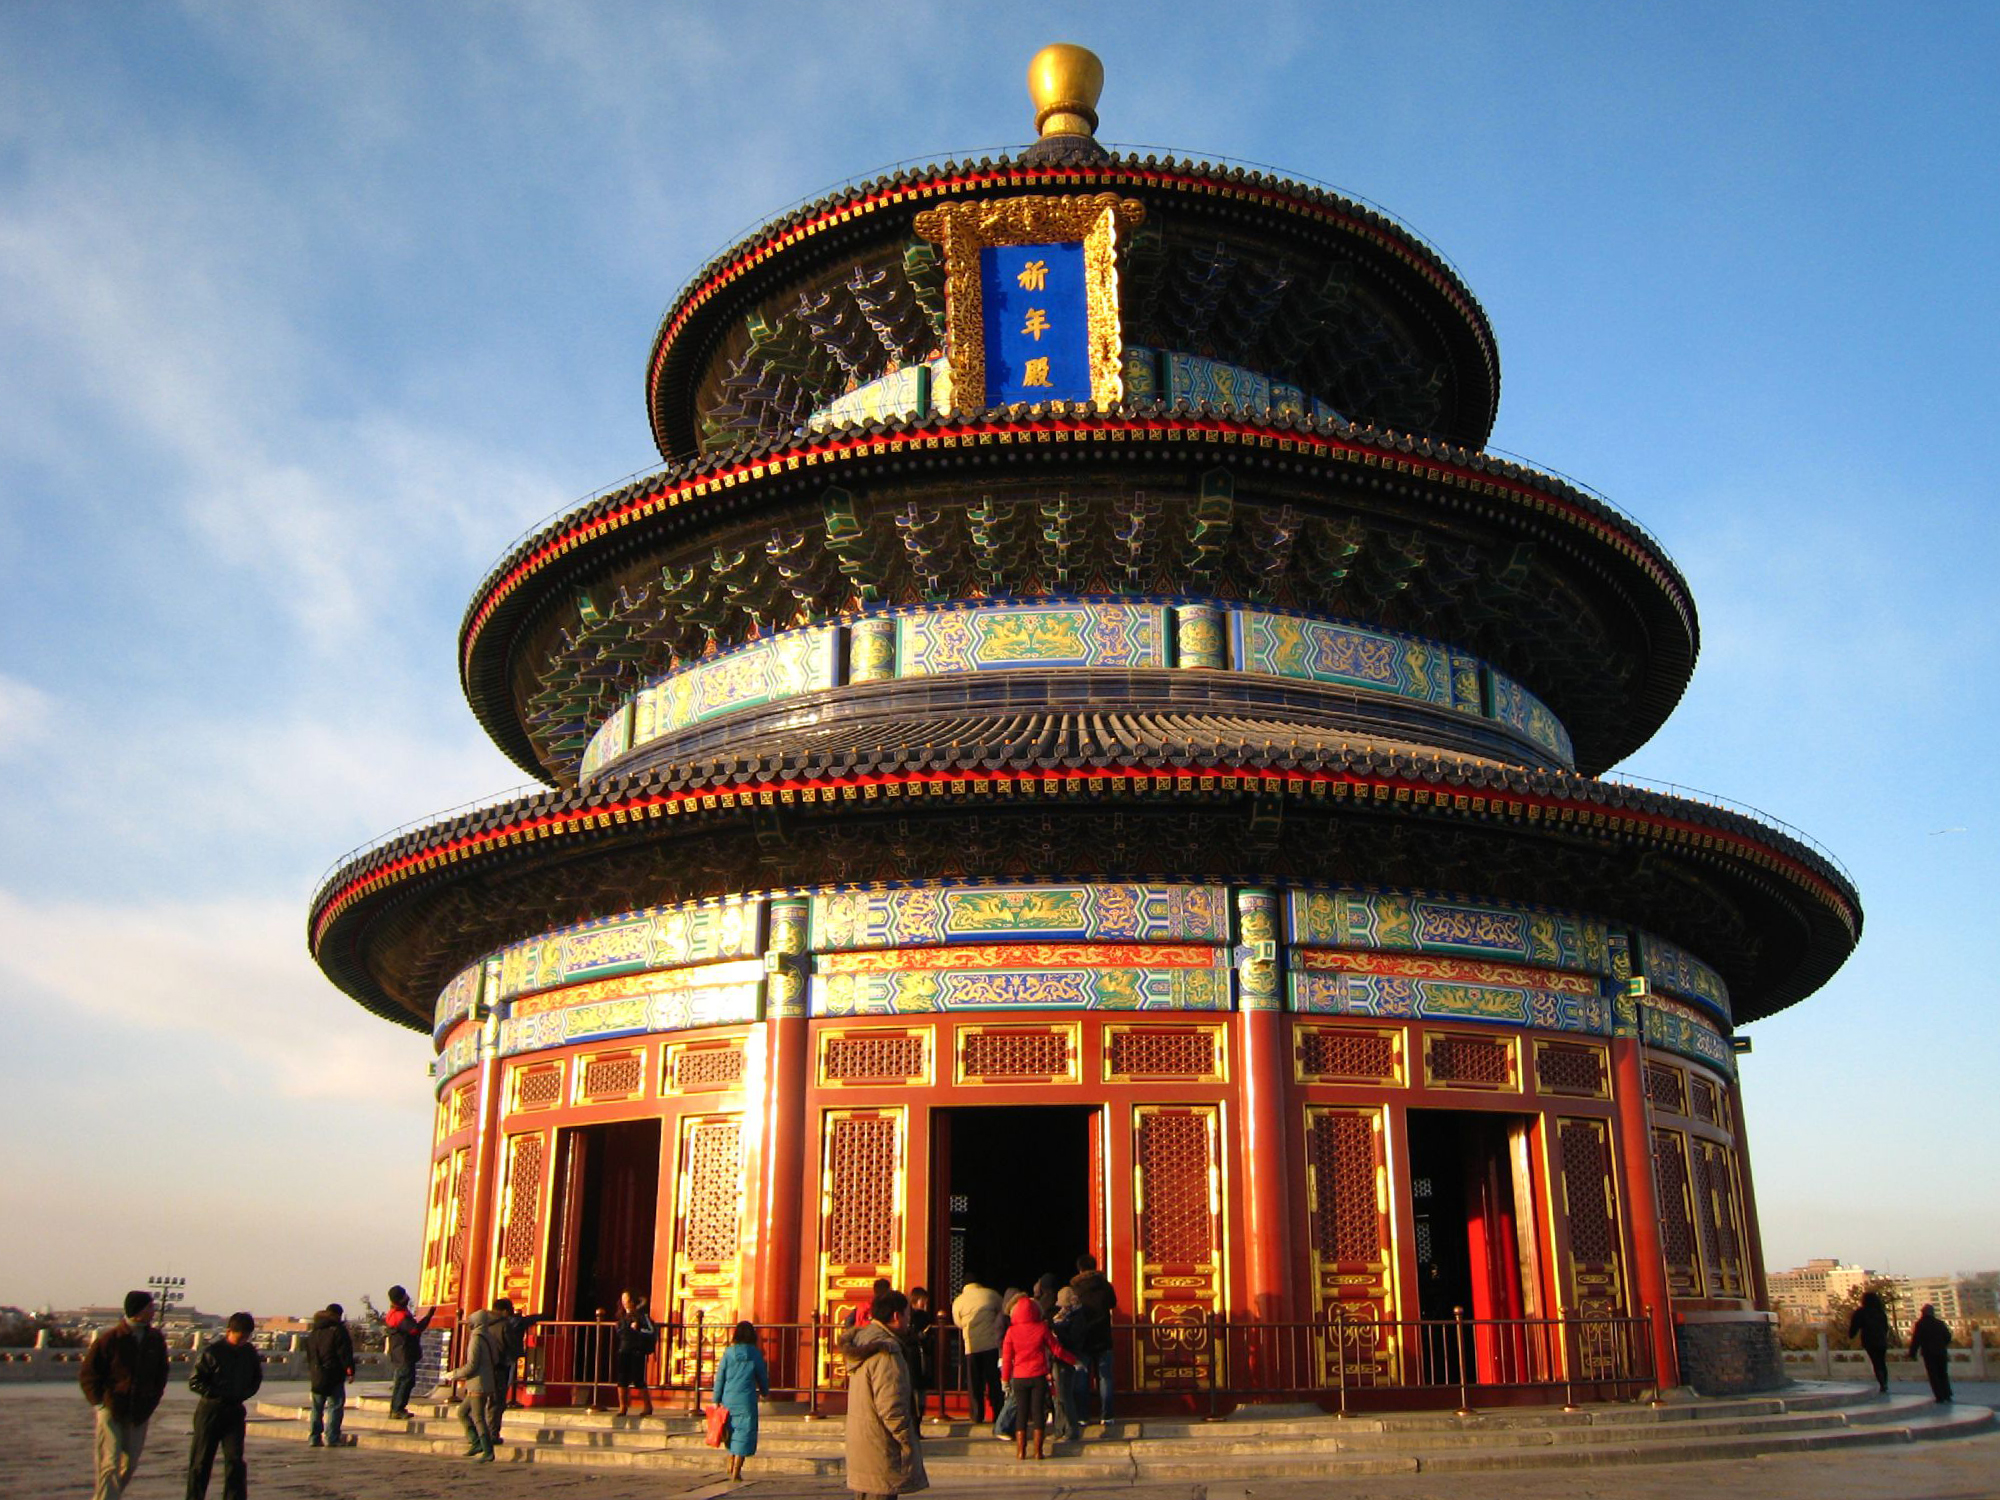 The Temple of Heaven in Beijing, China